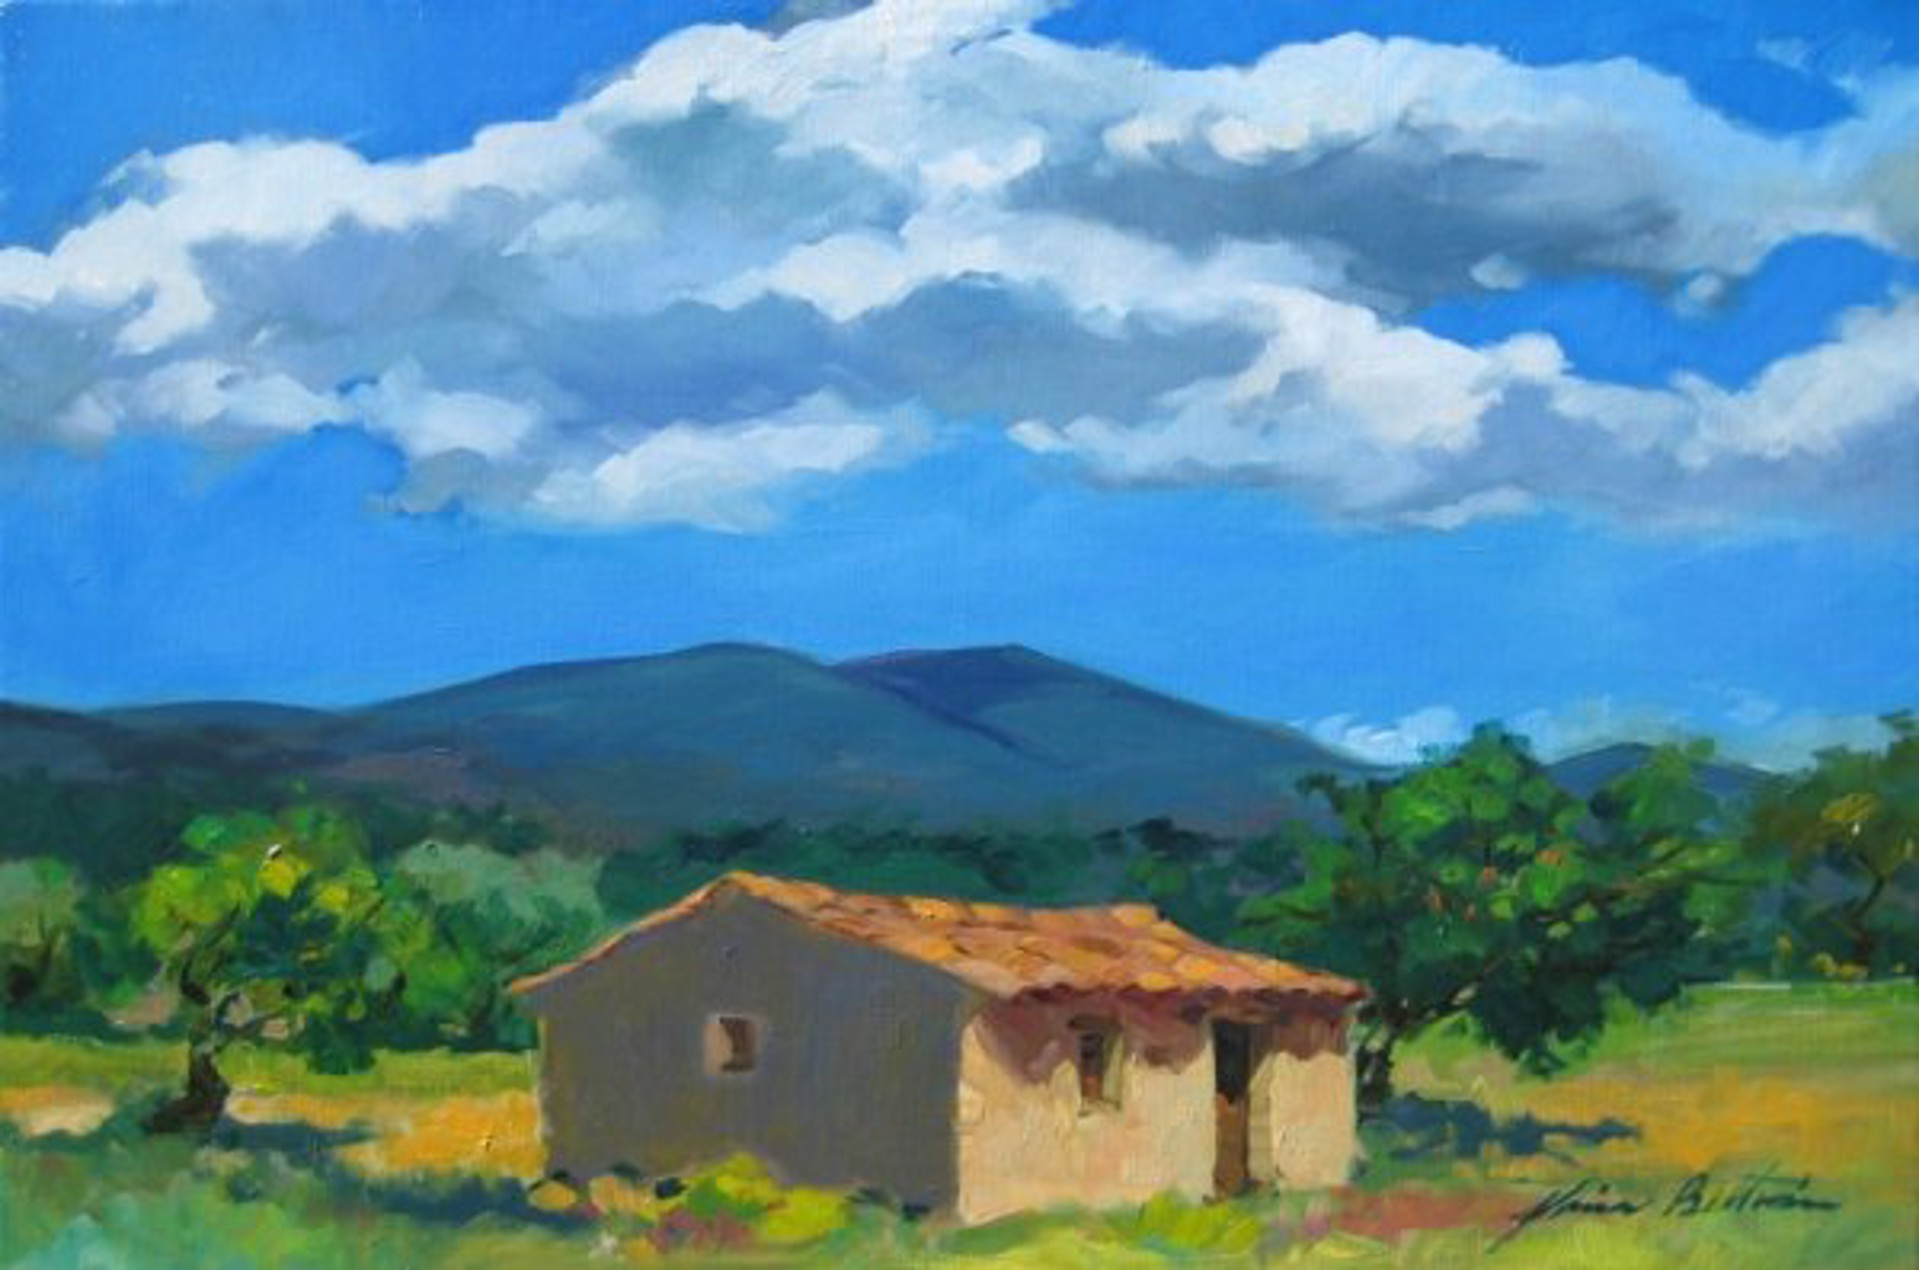 Bertran: Under The Summer Sky, Provence by Maria Bertrán